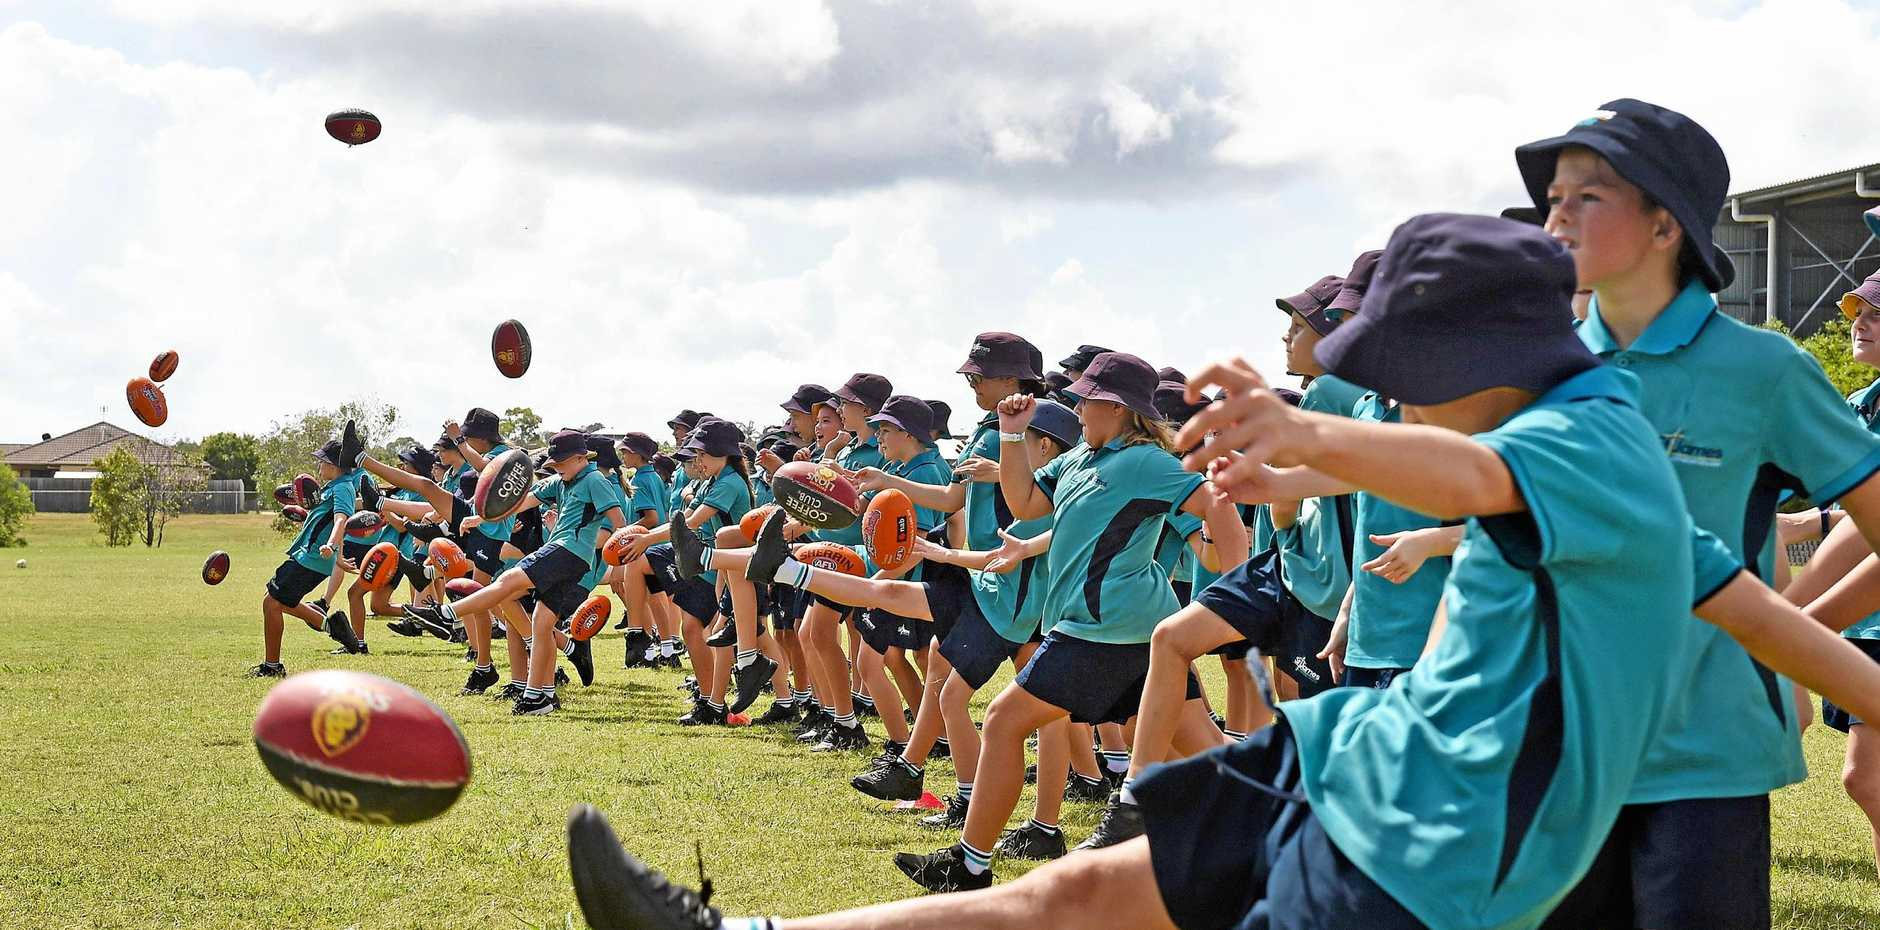 FUTURE ATHLETES: Students launch the footies during the Brisbane Lions' visit to St James Lutheran College yesterday.